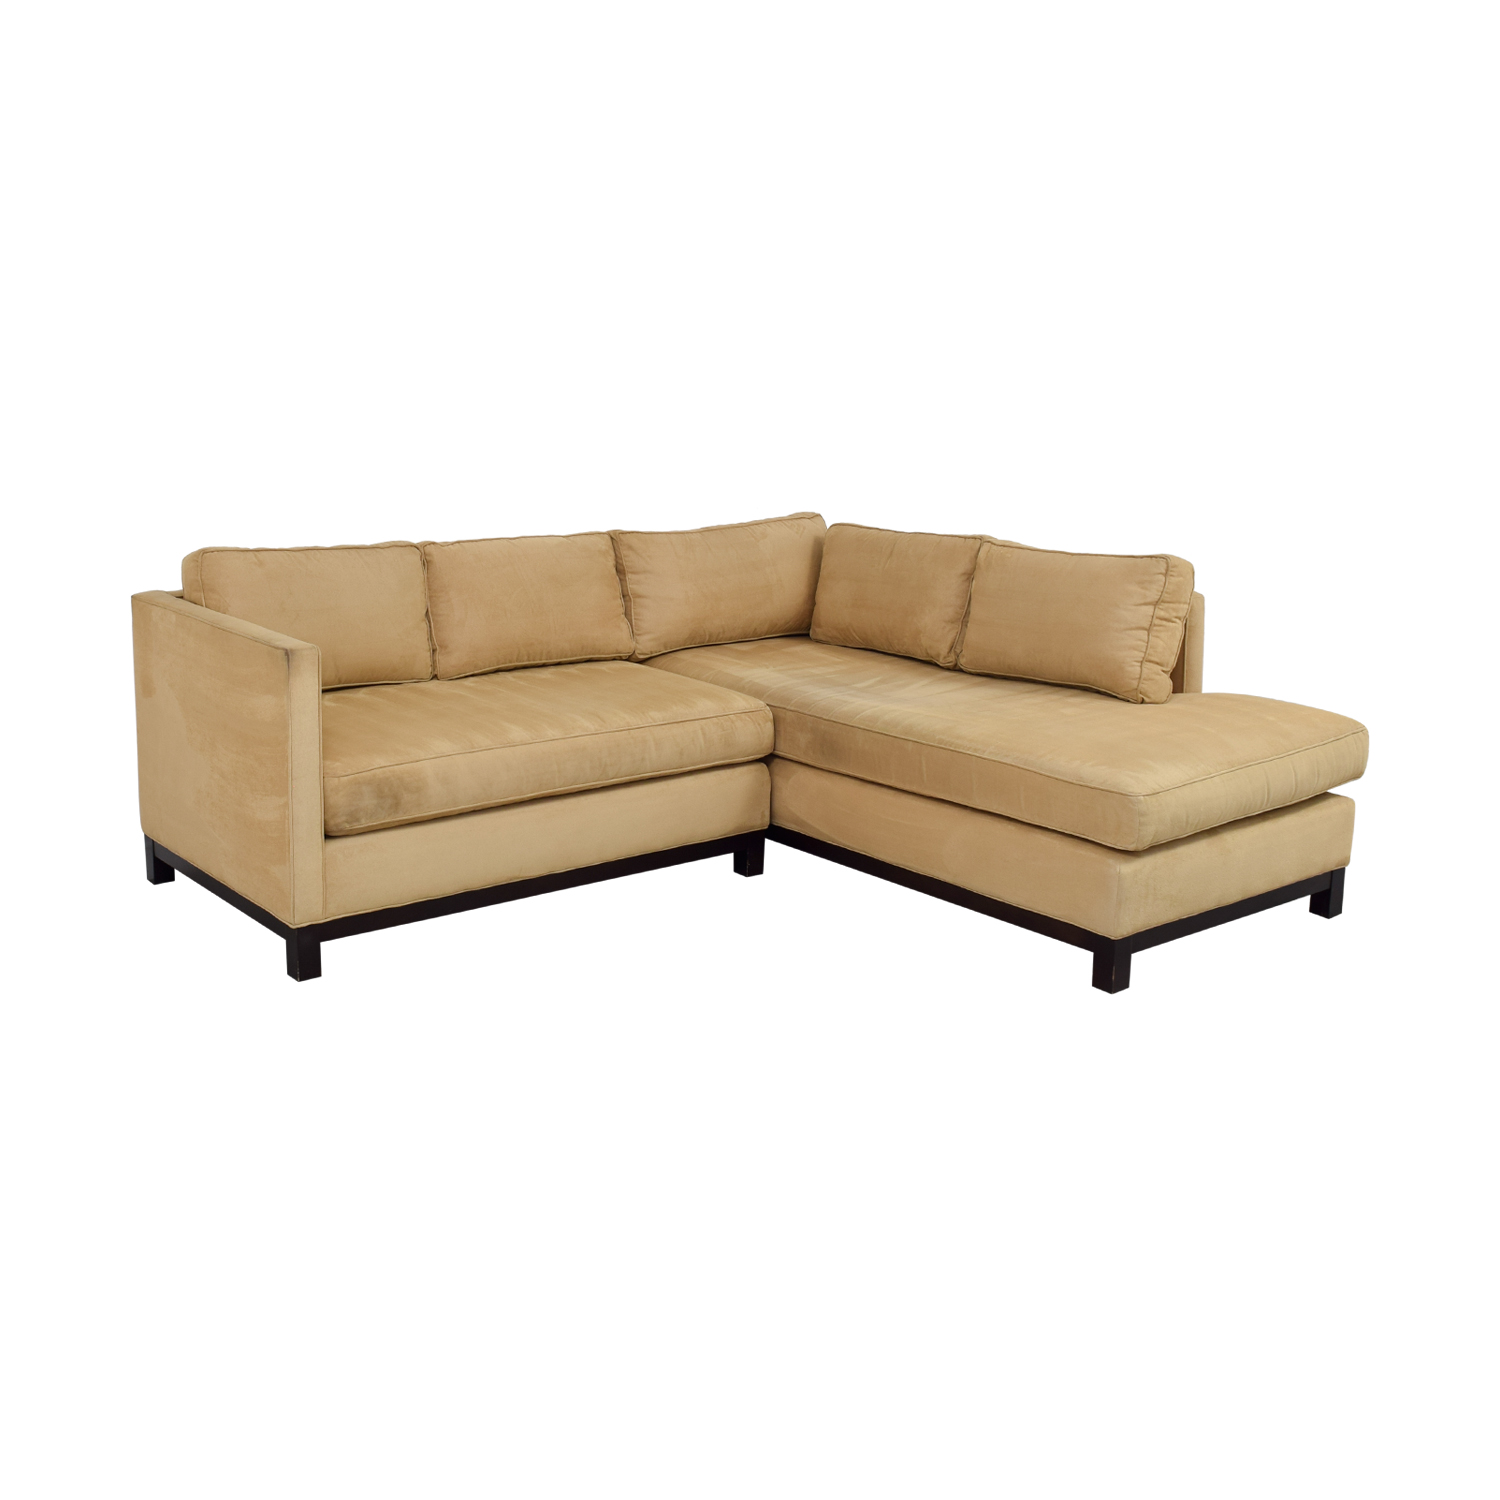 Mitchell Gold + Bob Williams Mitchell Gold + Bob Williams Clifton Honey Suede Sectional on sale